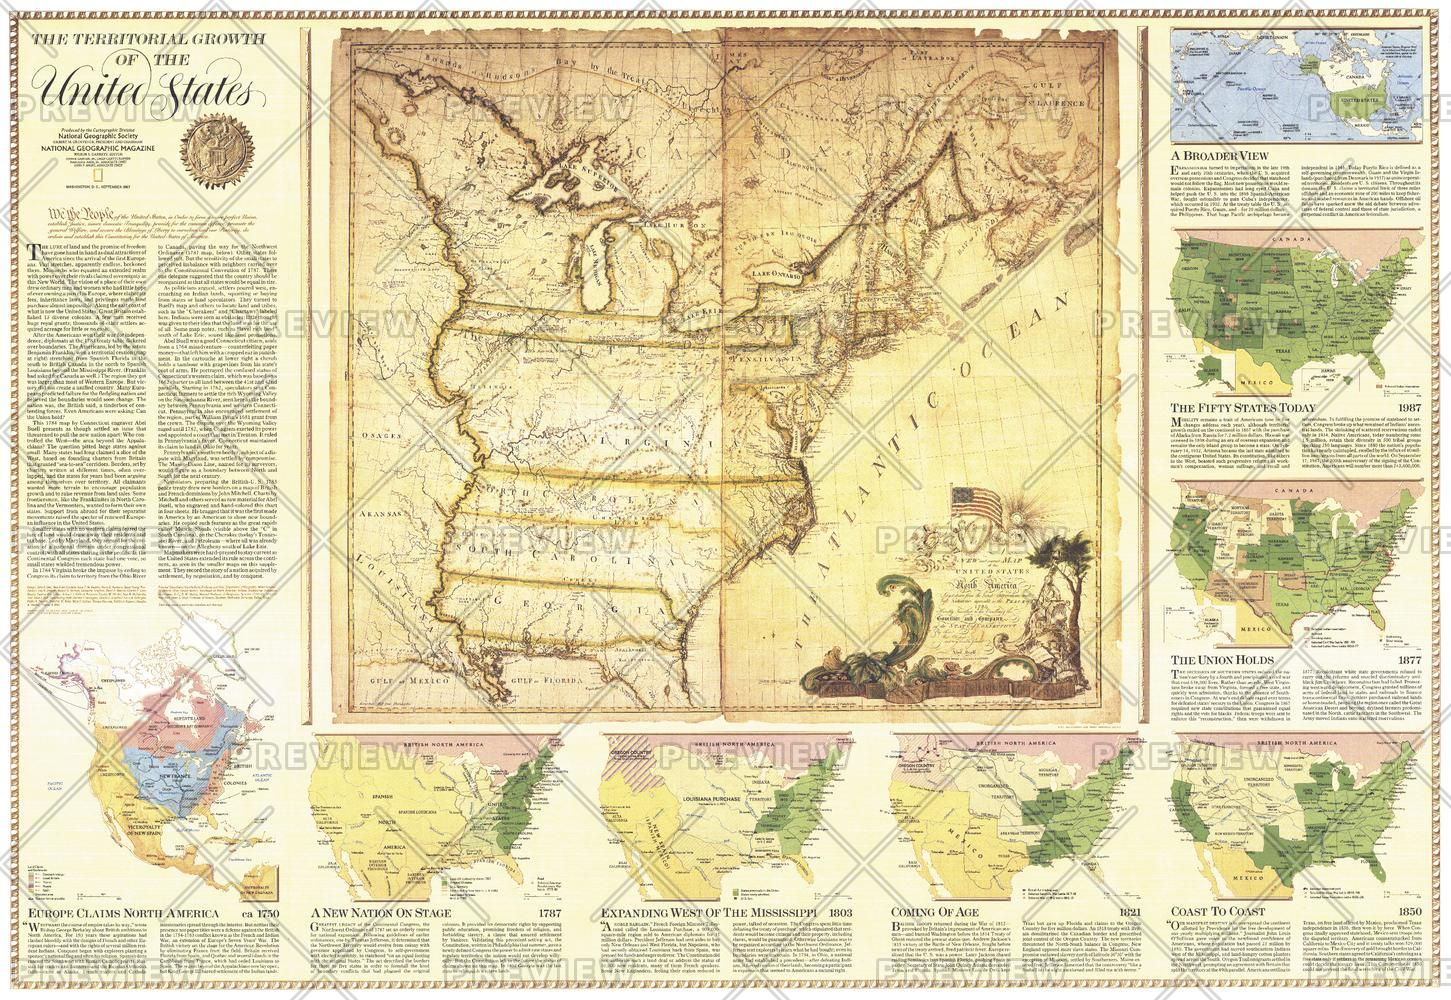 Territorial Growth of the United States  -  Published 1987